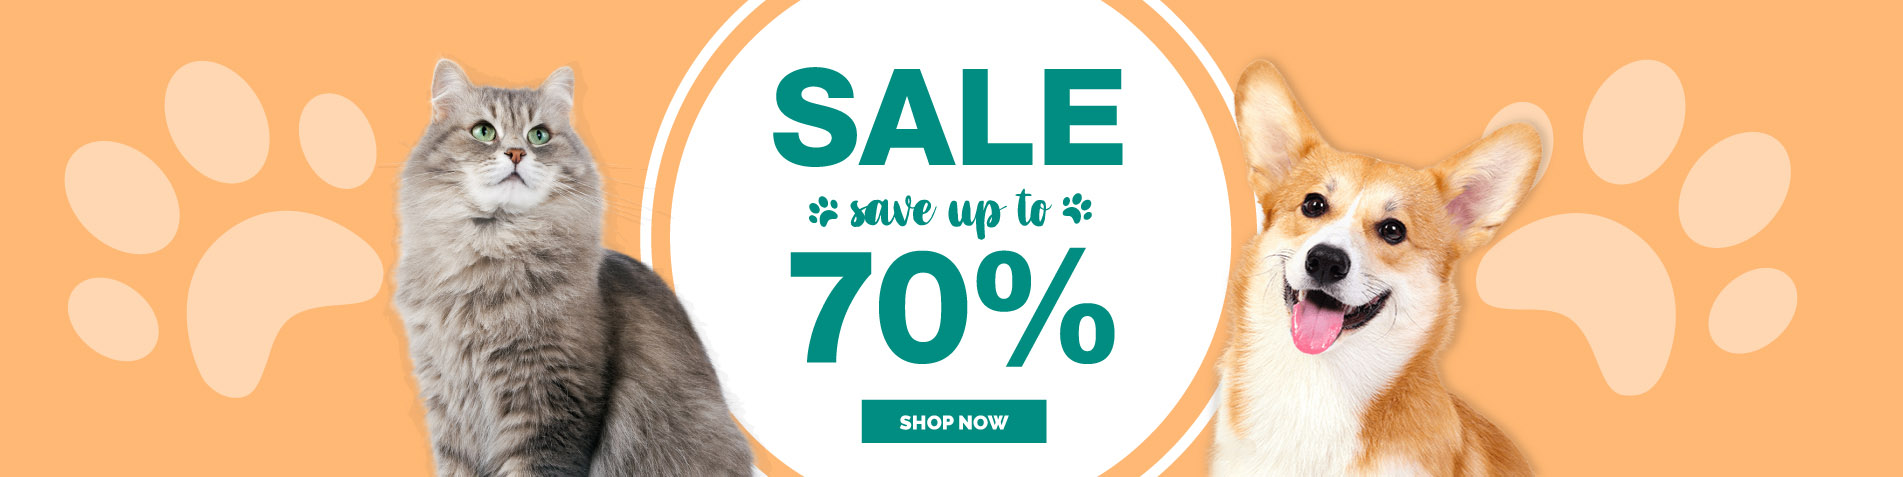 VitaPaws Sale - up to 70% off